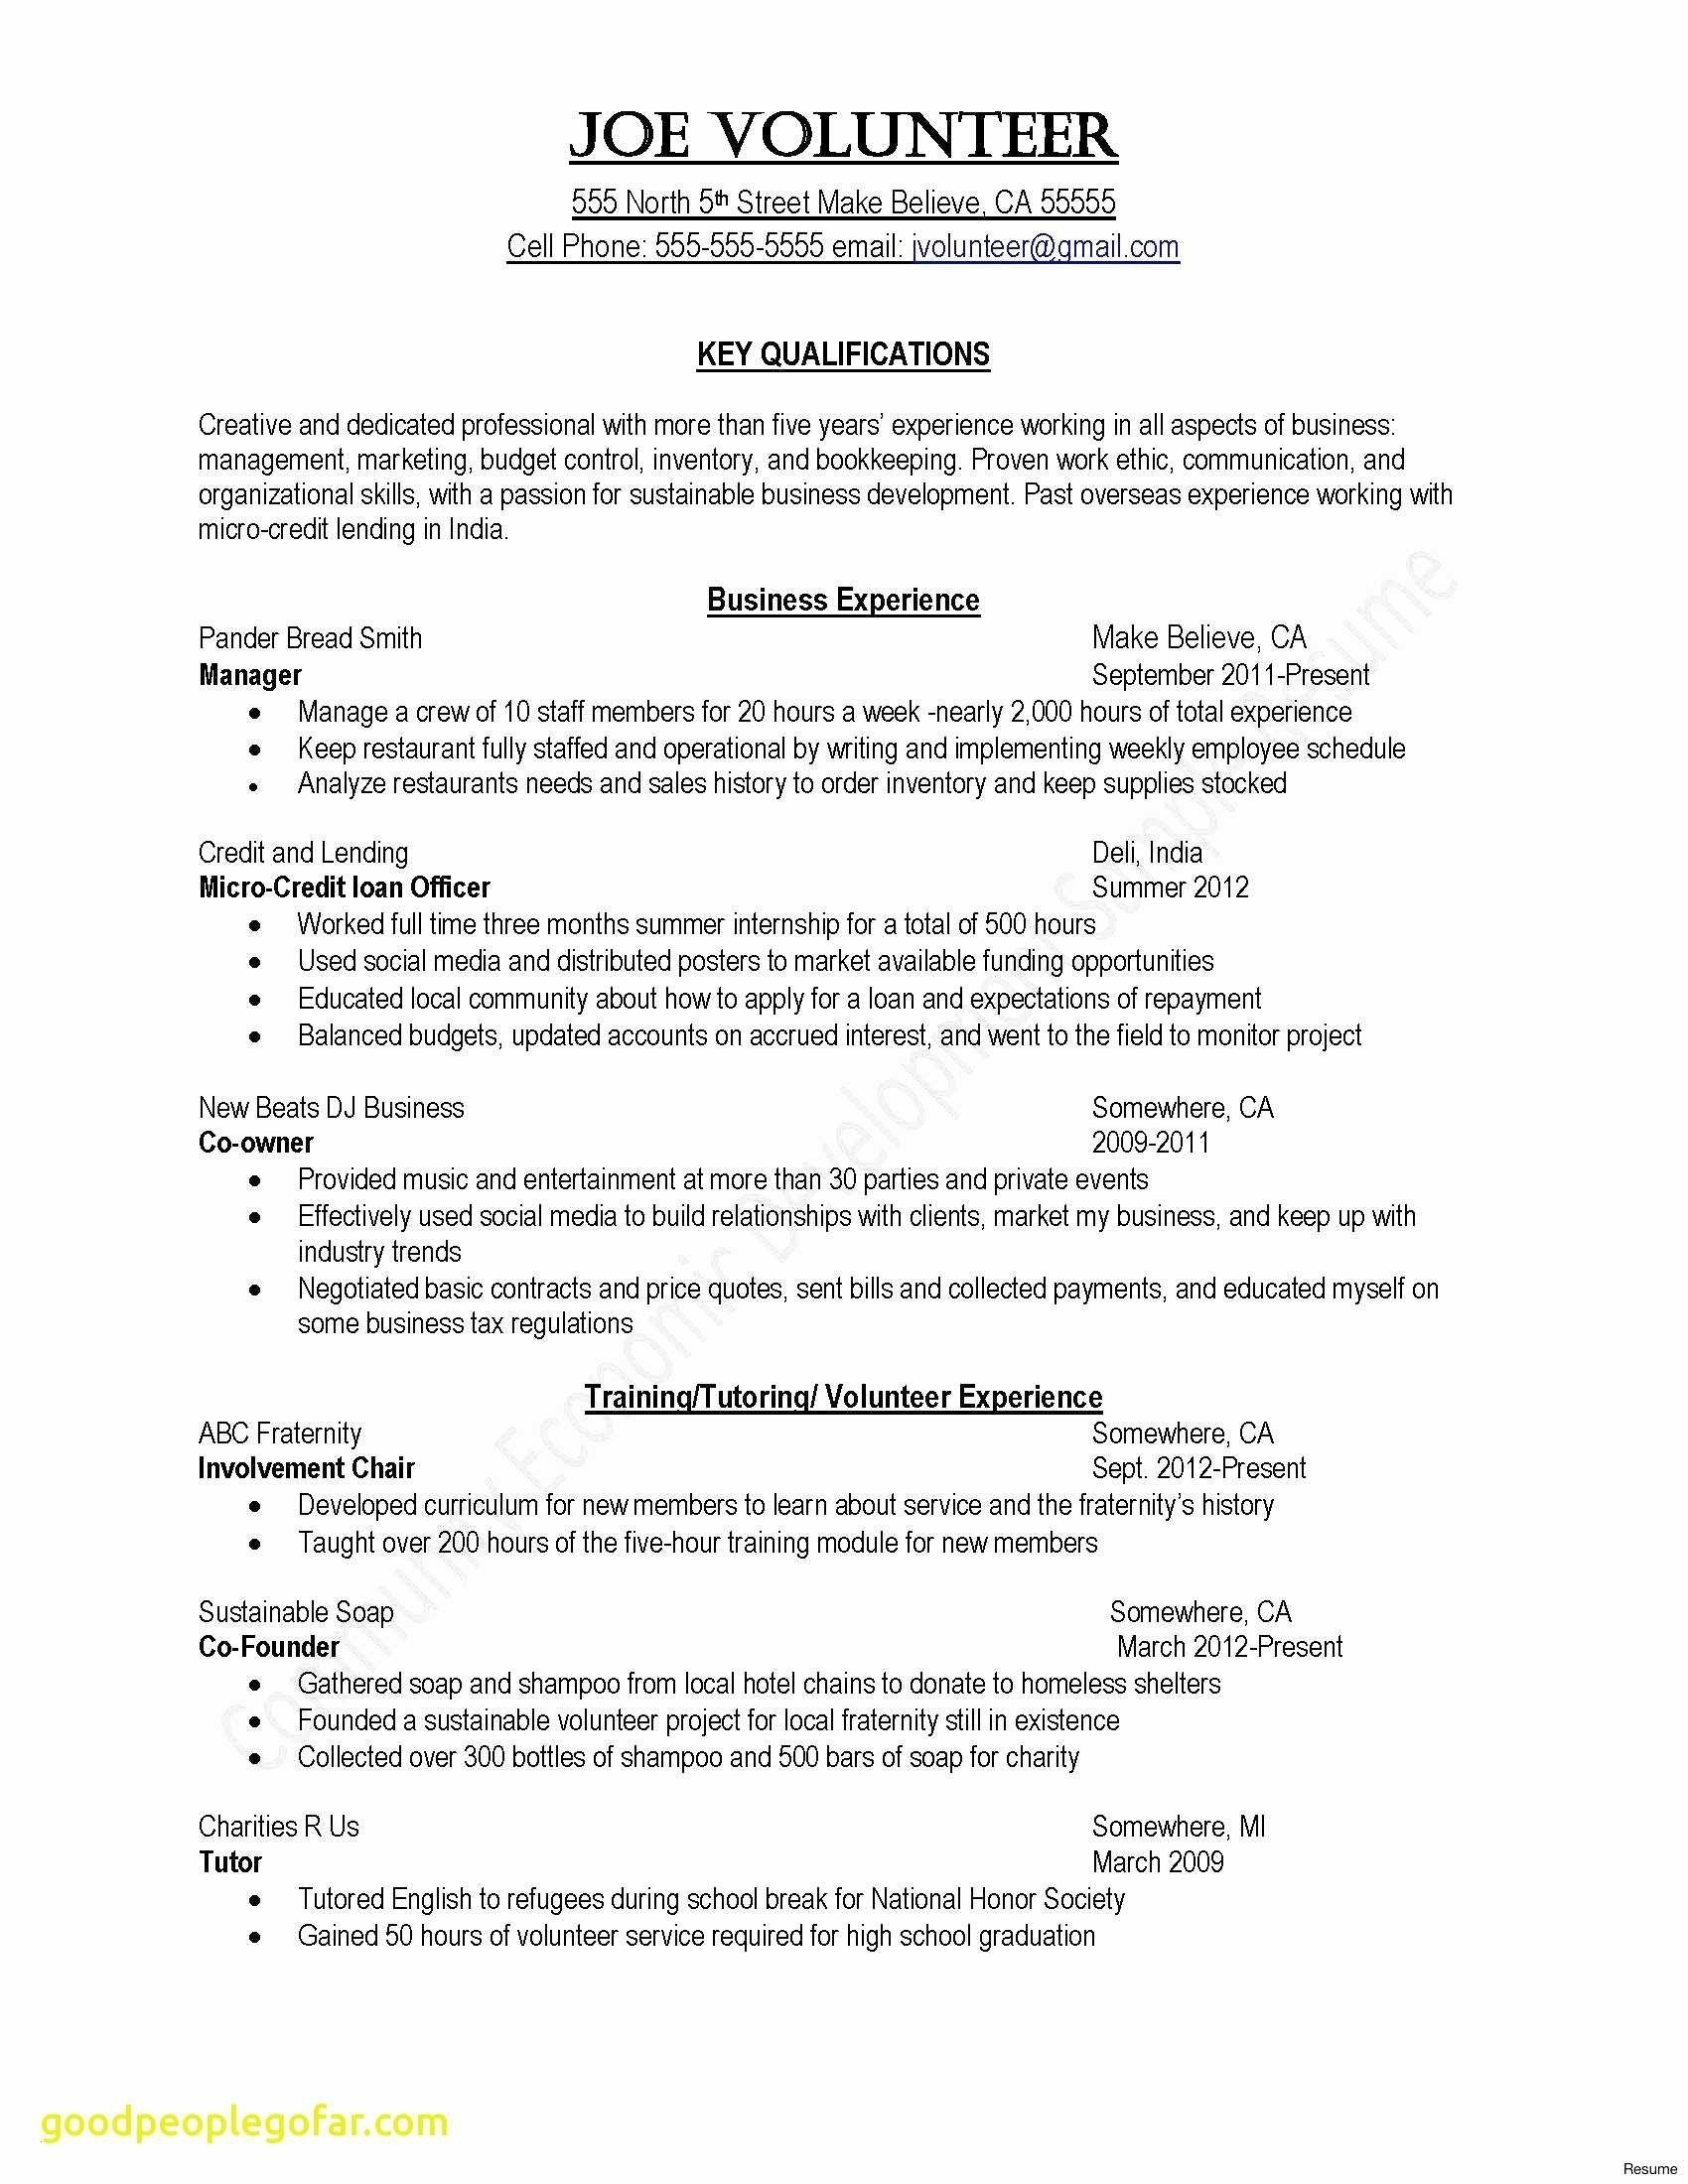 What to Put for Skills On Resume - 19 Skills You Can Put A Resume